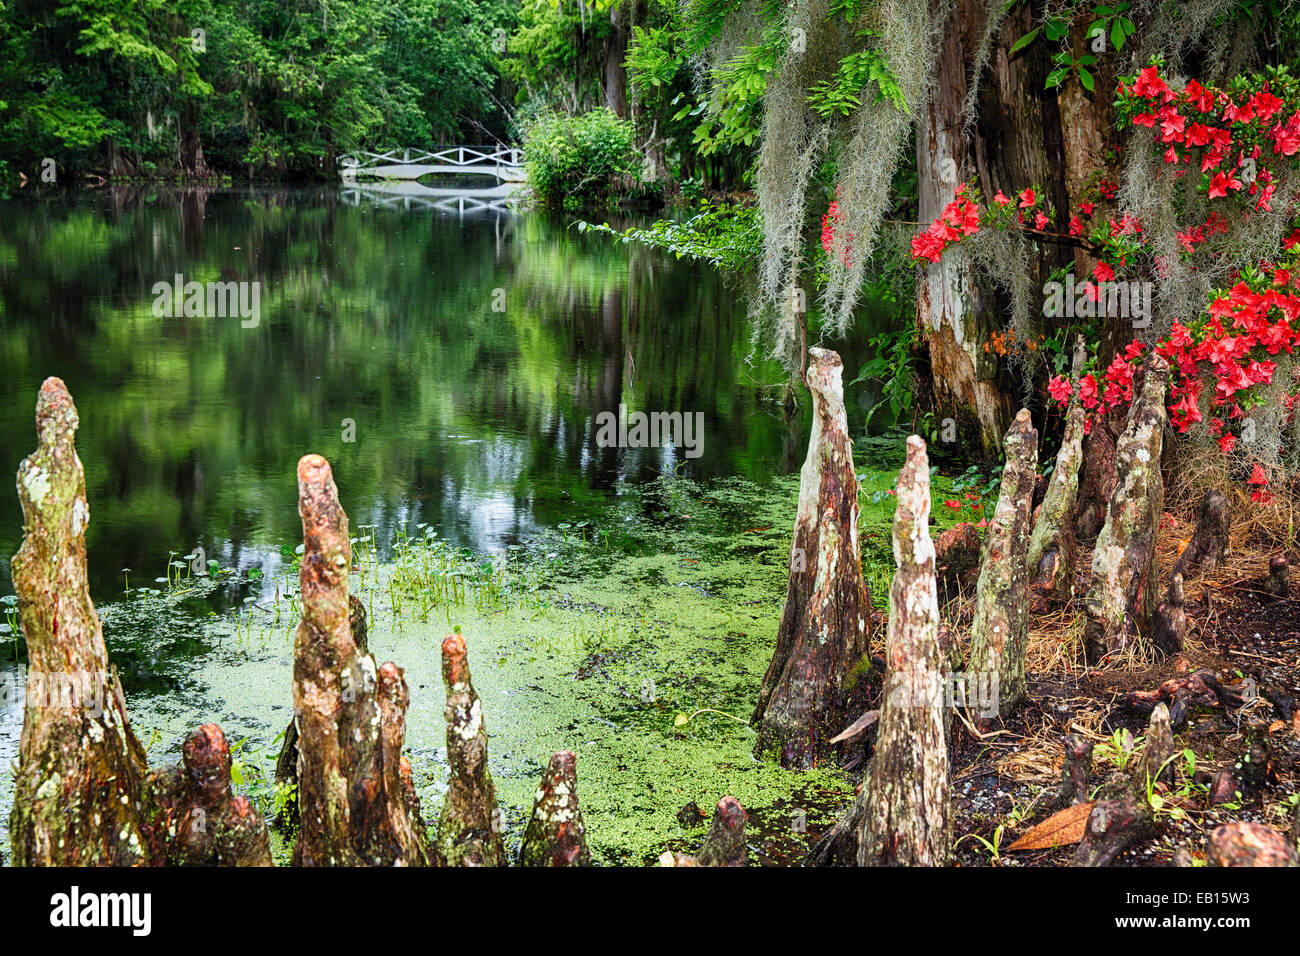 Swamp Cypress Roots Along A Pond with a White Footbridge, Magnolia Plantation, Charleston, South Carolina - Stock Image